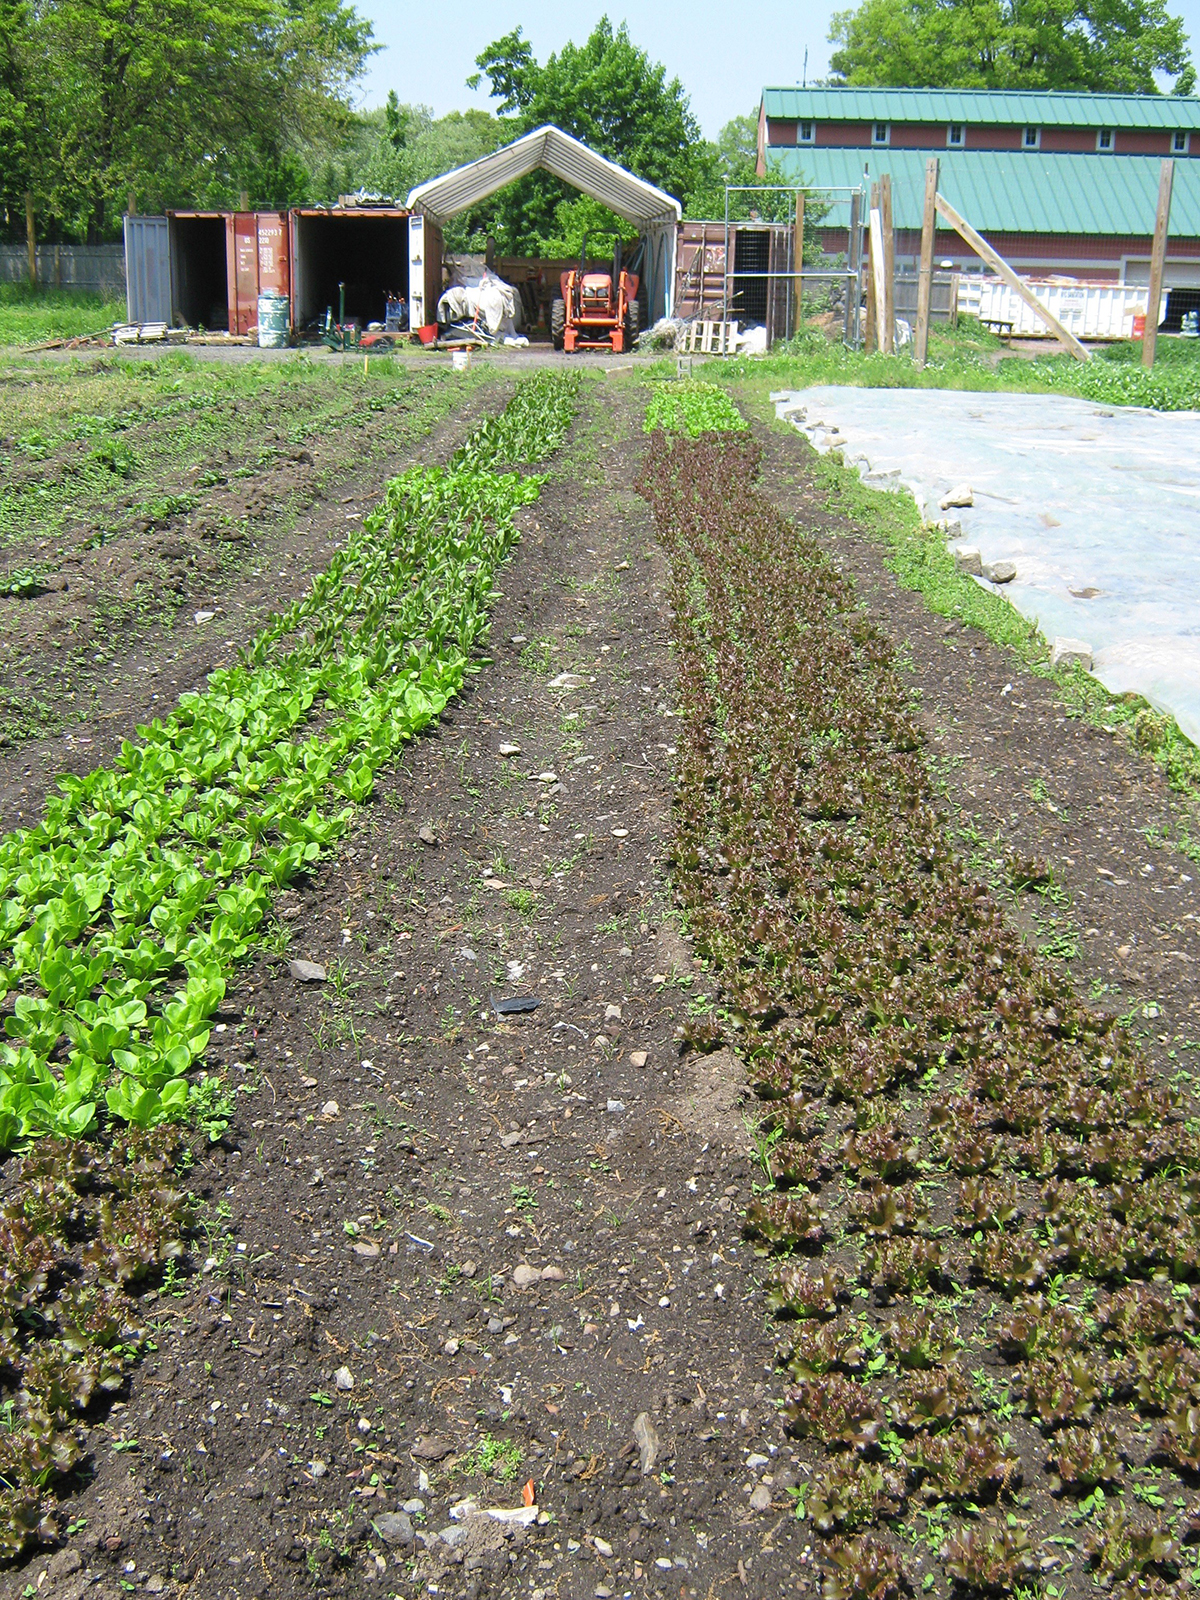 A 2.5 Acre Heritage Farm Grows In NYC: Producing 45 Tons of Produce In Past 6 Seasons & Growing Community Spirit